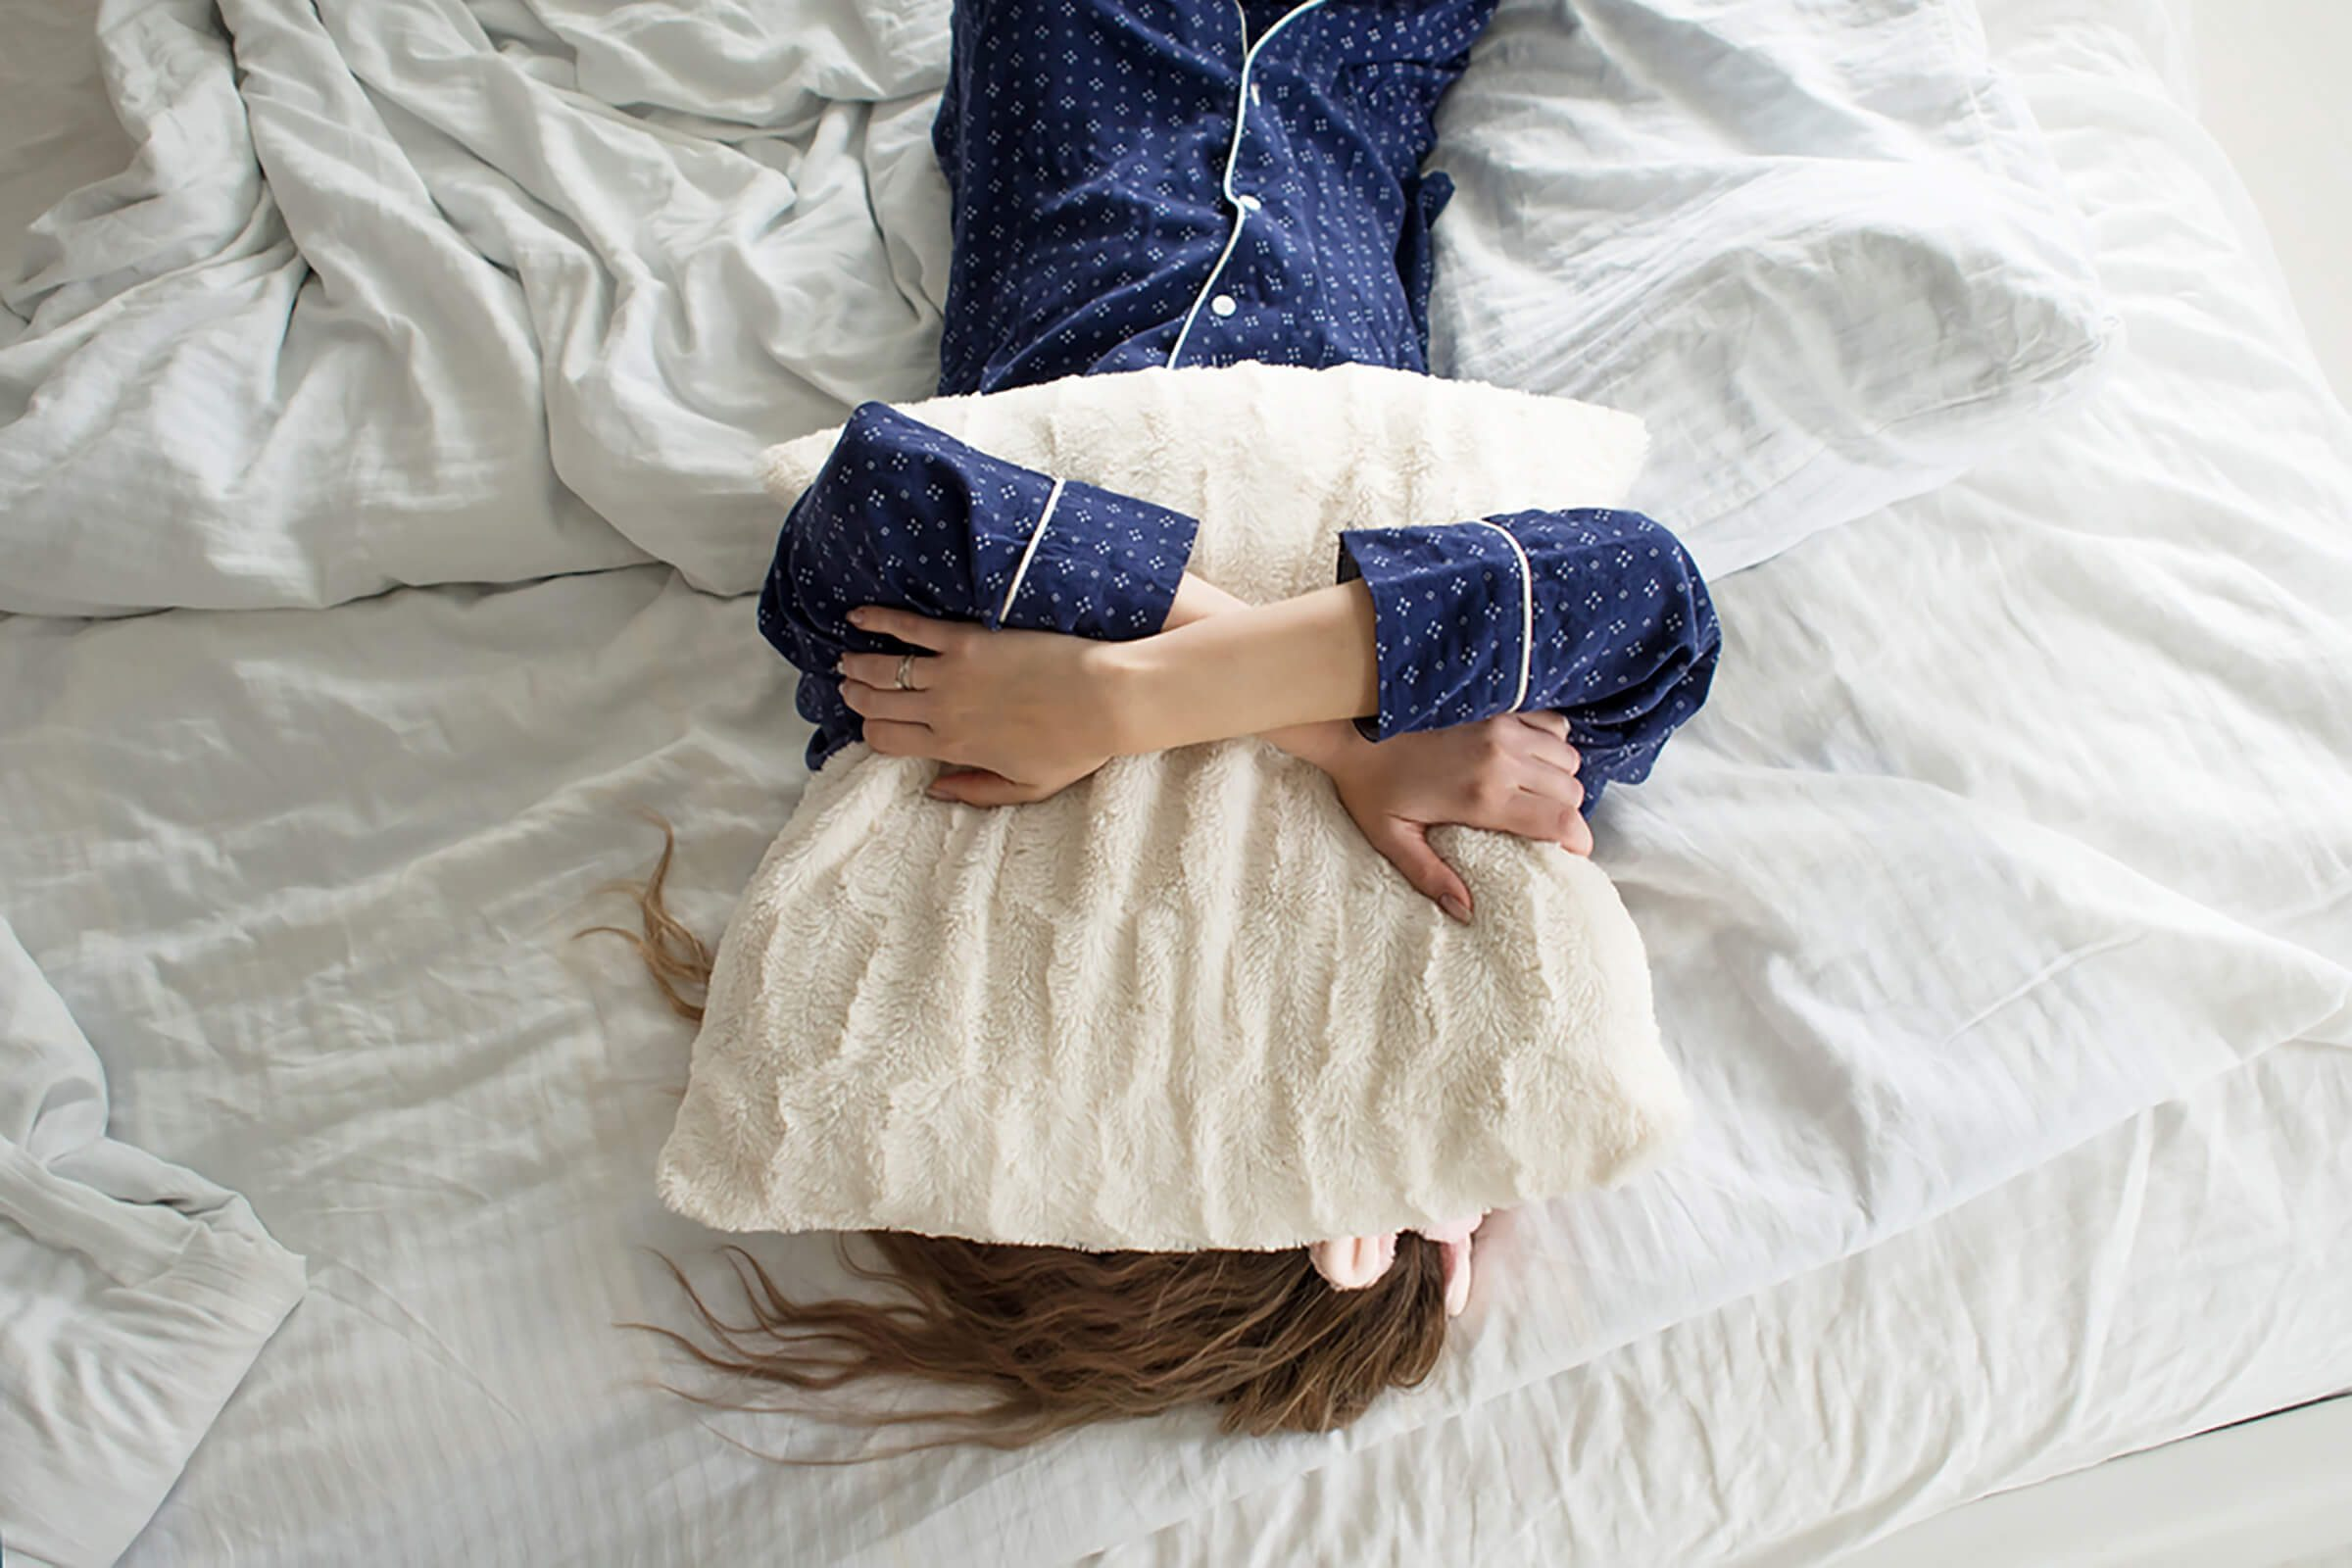 woman with pillow over her face in bed